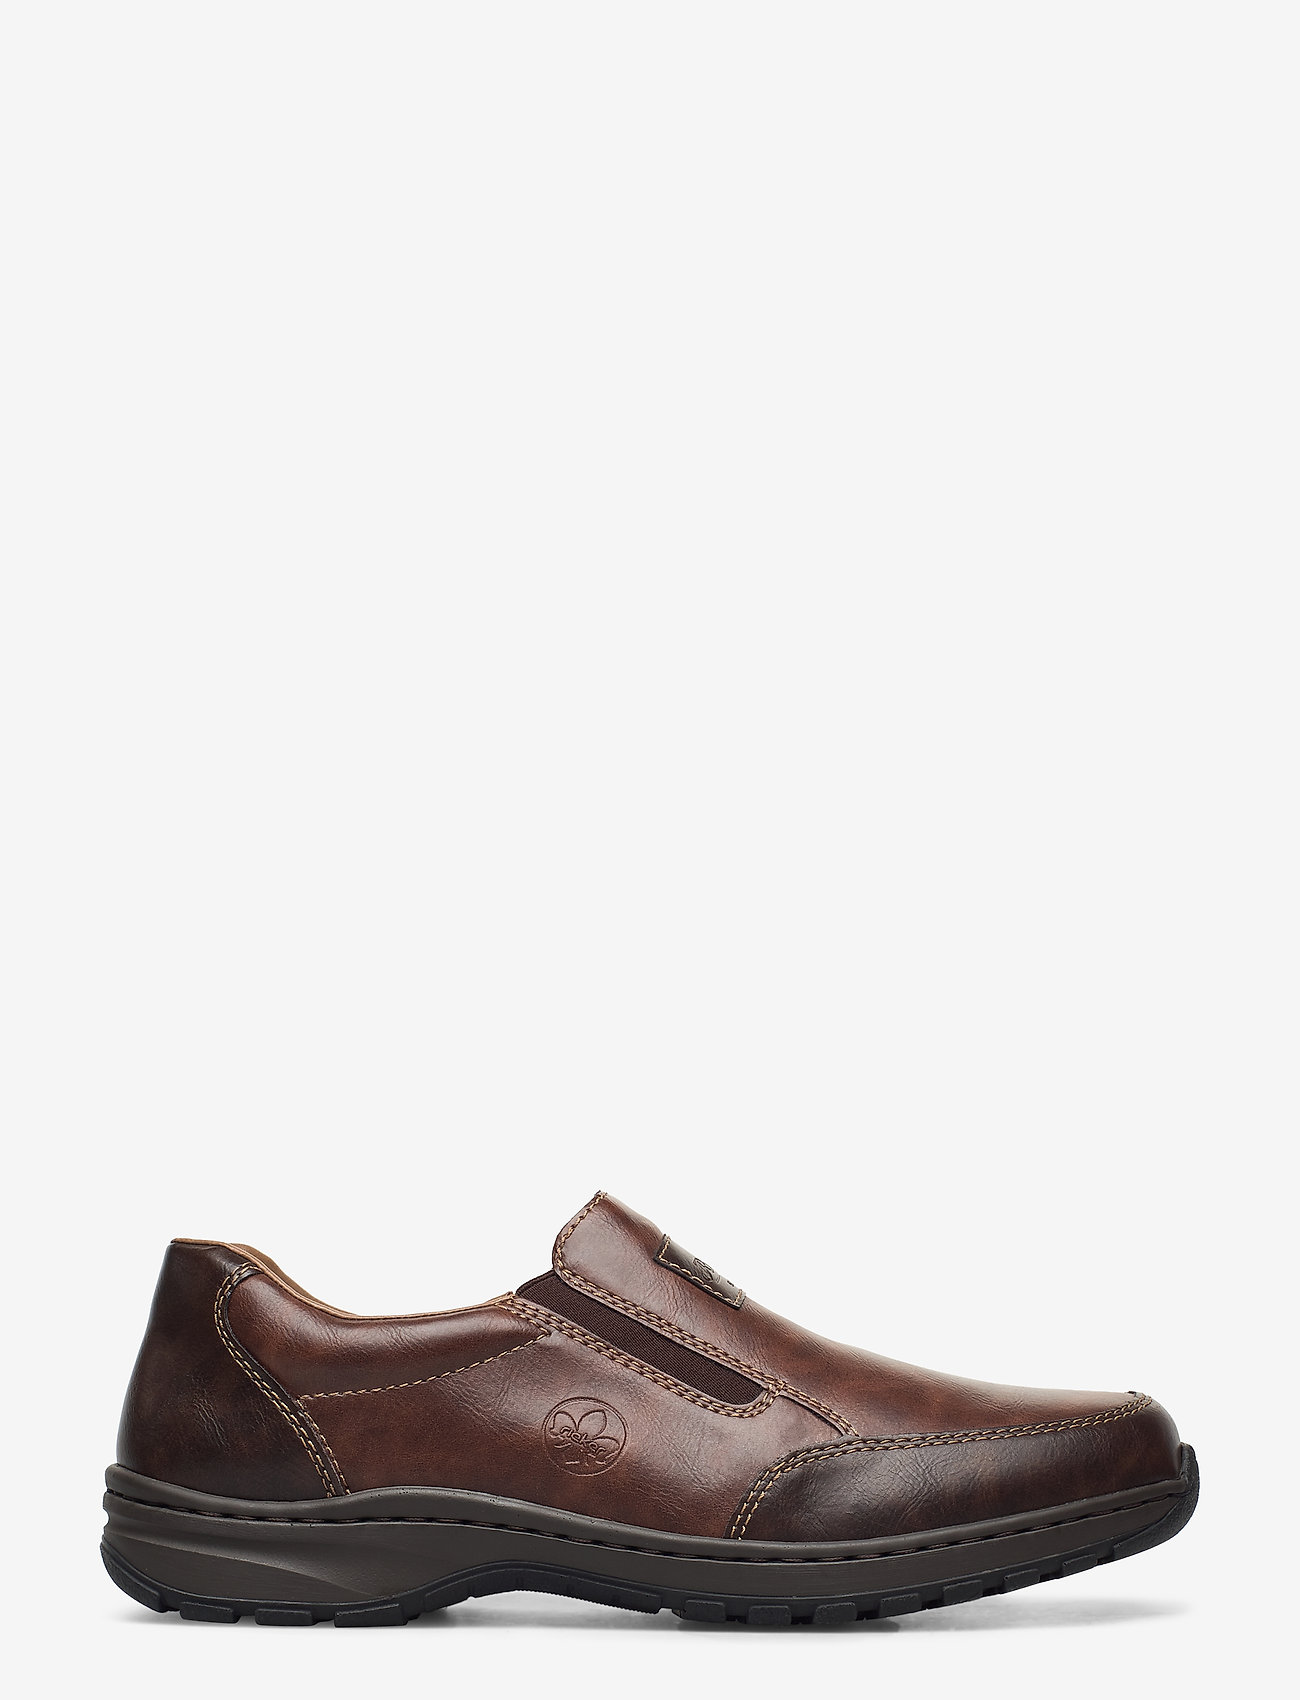 Rieker - 03354-26 - loafers - brown - 1